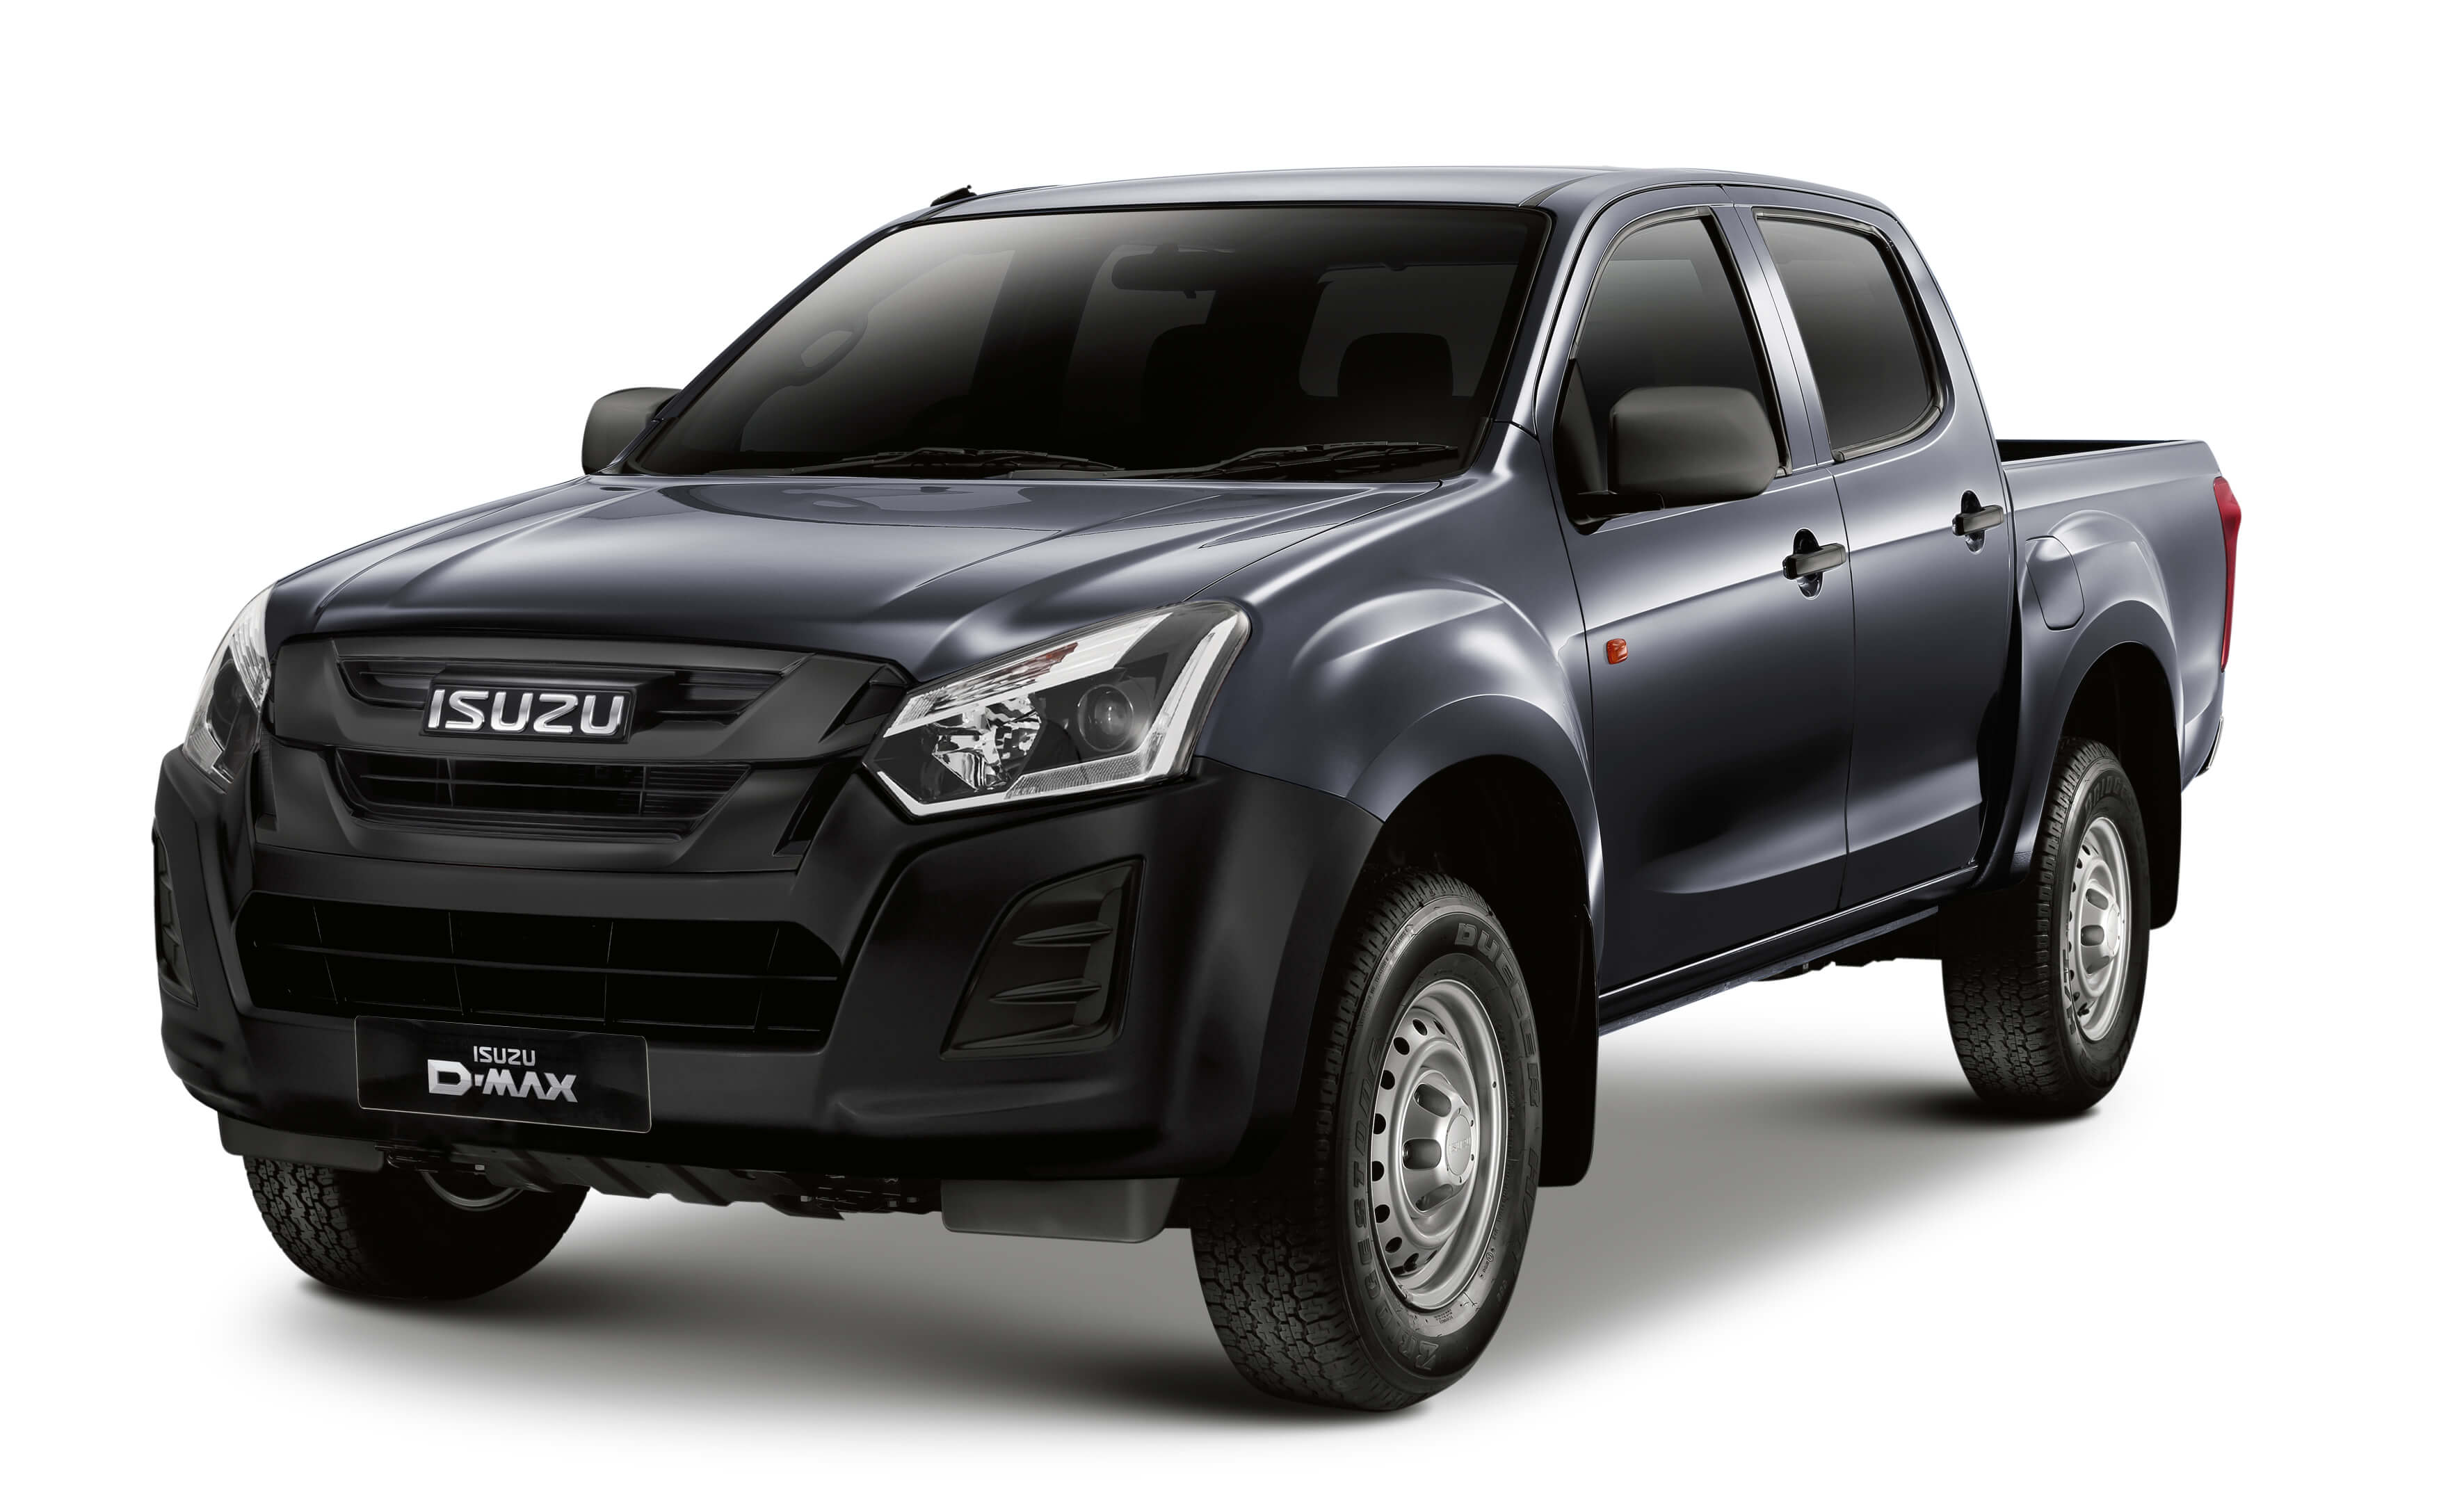 Isuzu D-Max Utility double cab in grey front view